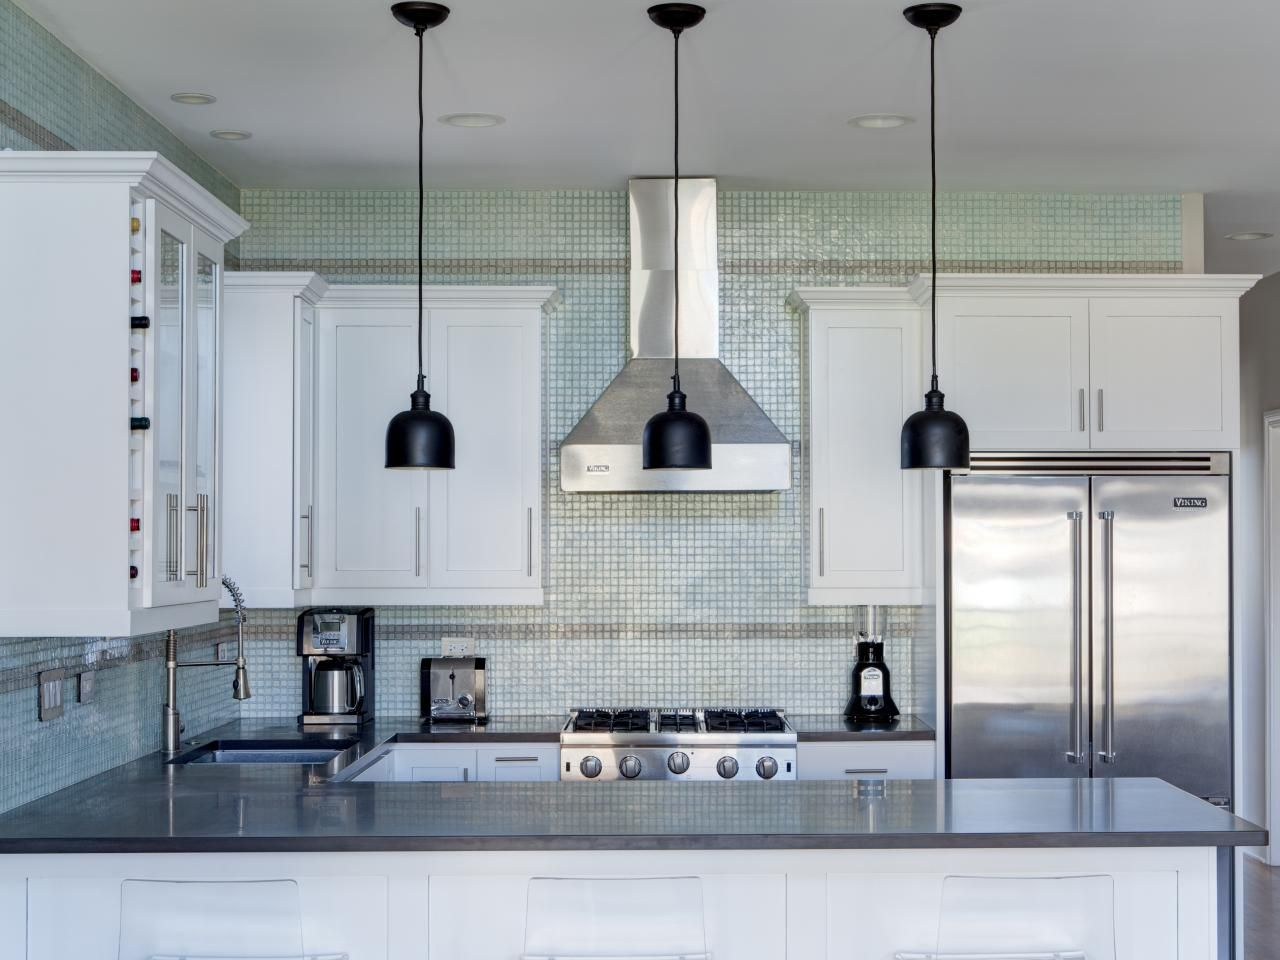 Kitchen 2.0: Design a Smarter Cooking Space | Backsplash ideas ...